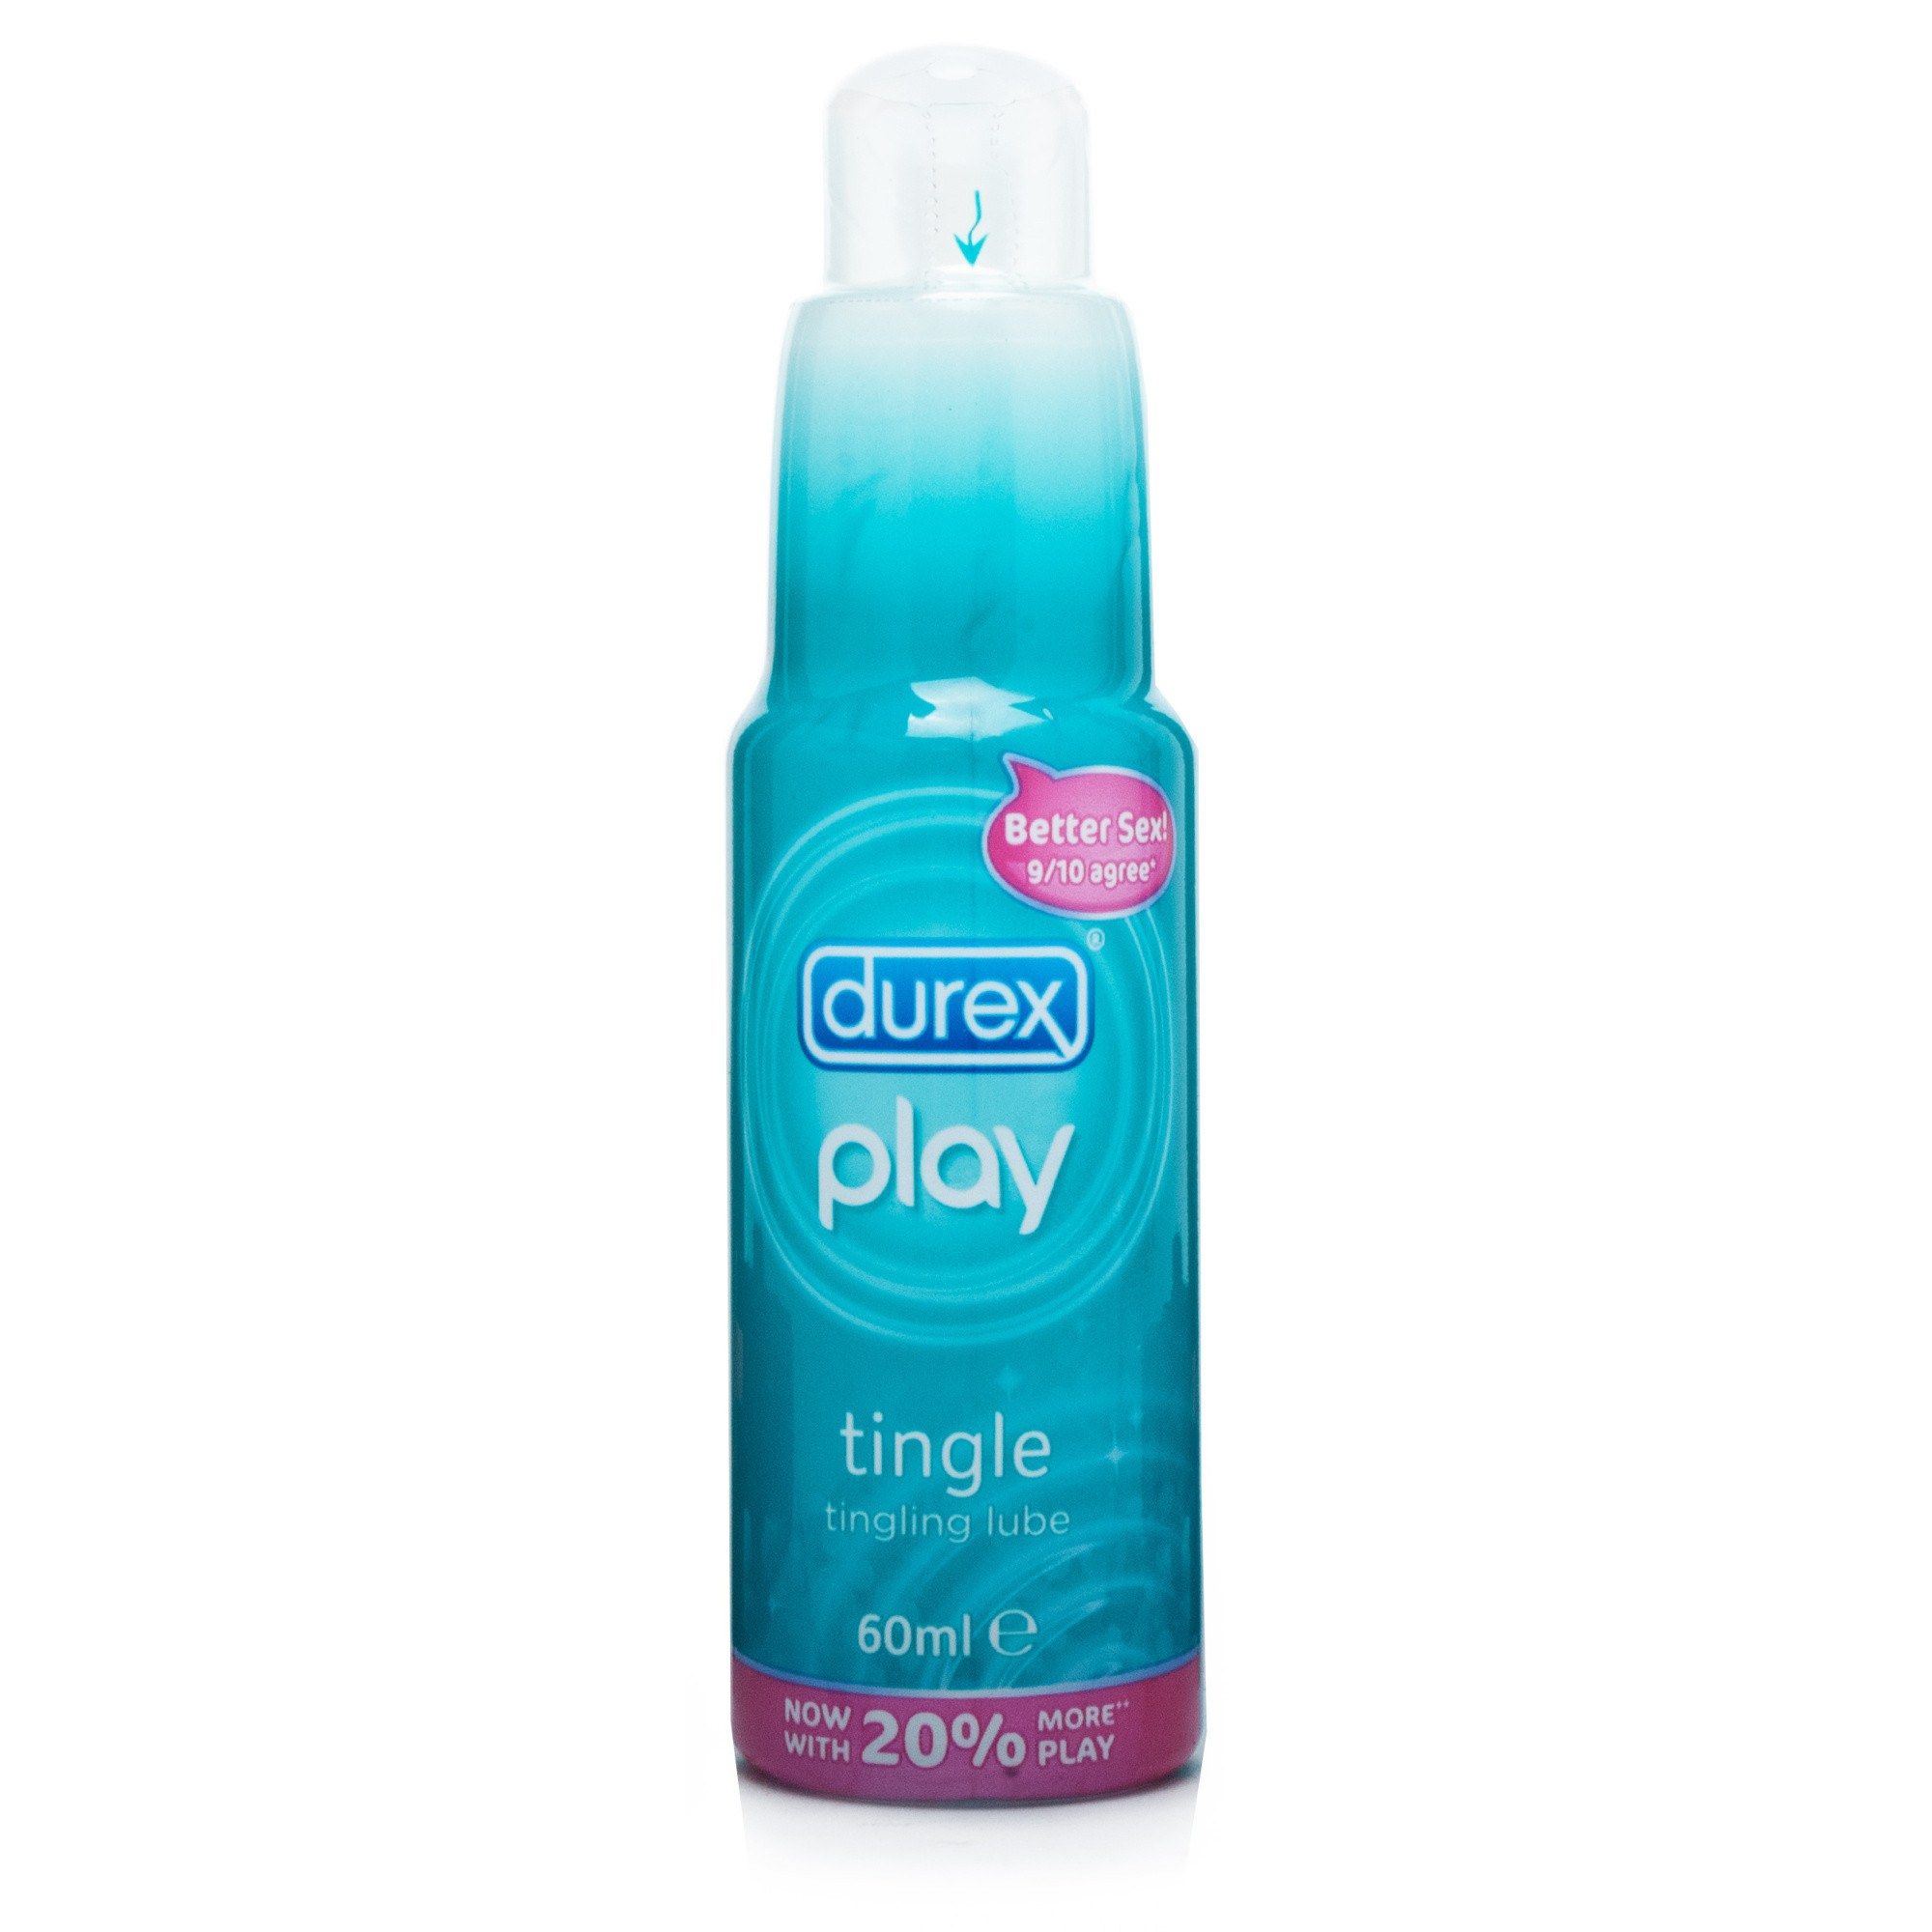 Durex Play Tingle Lubricant Gel